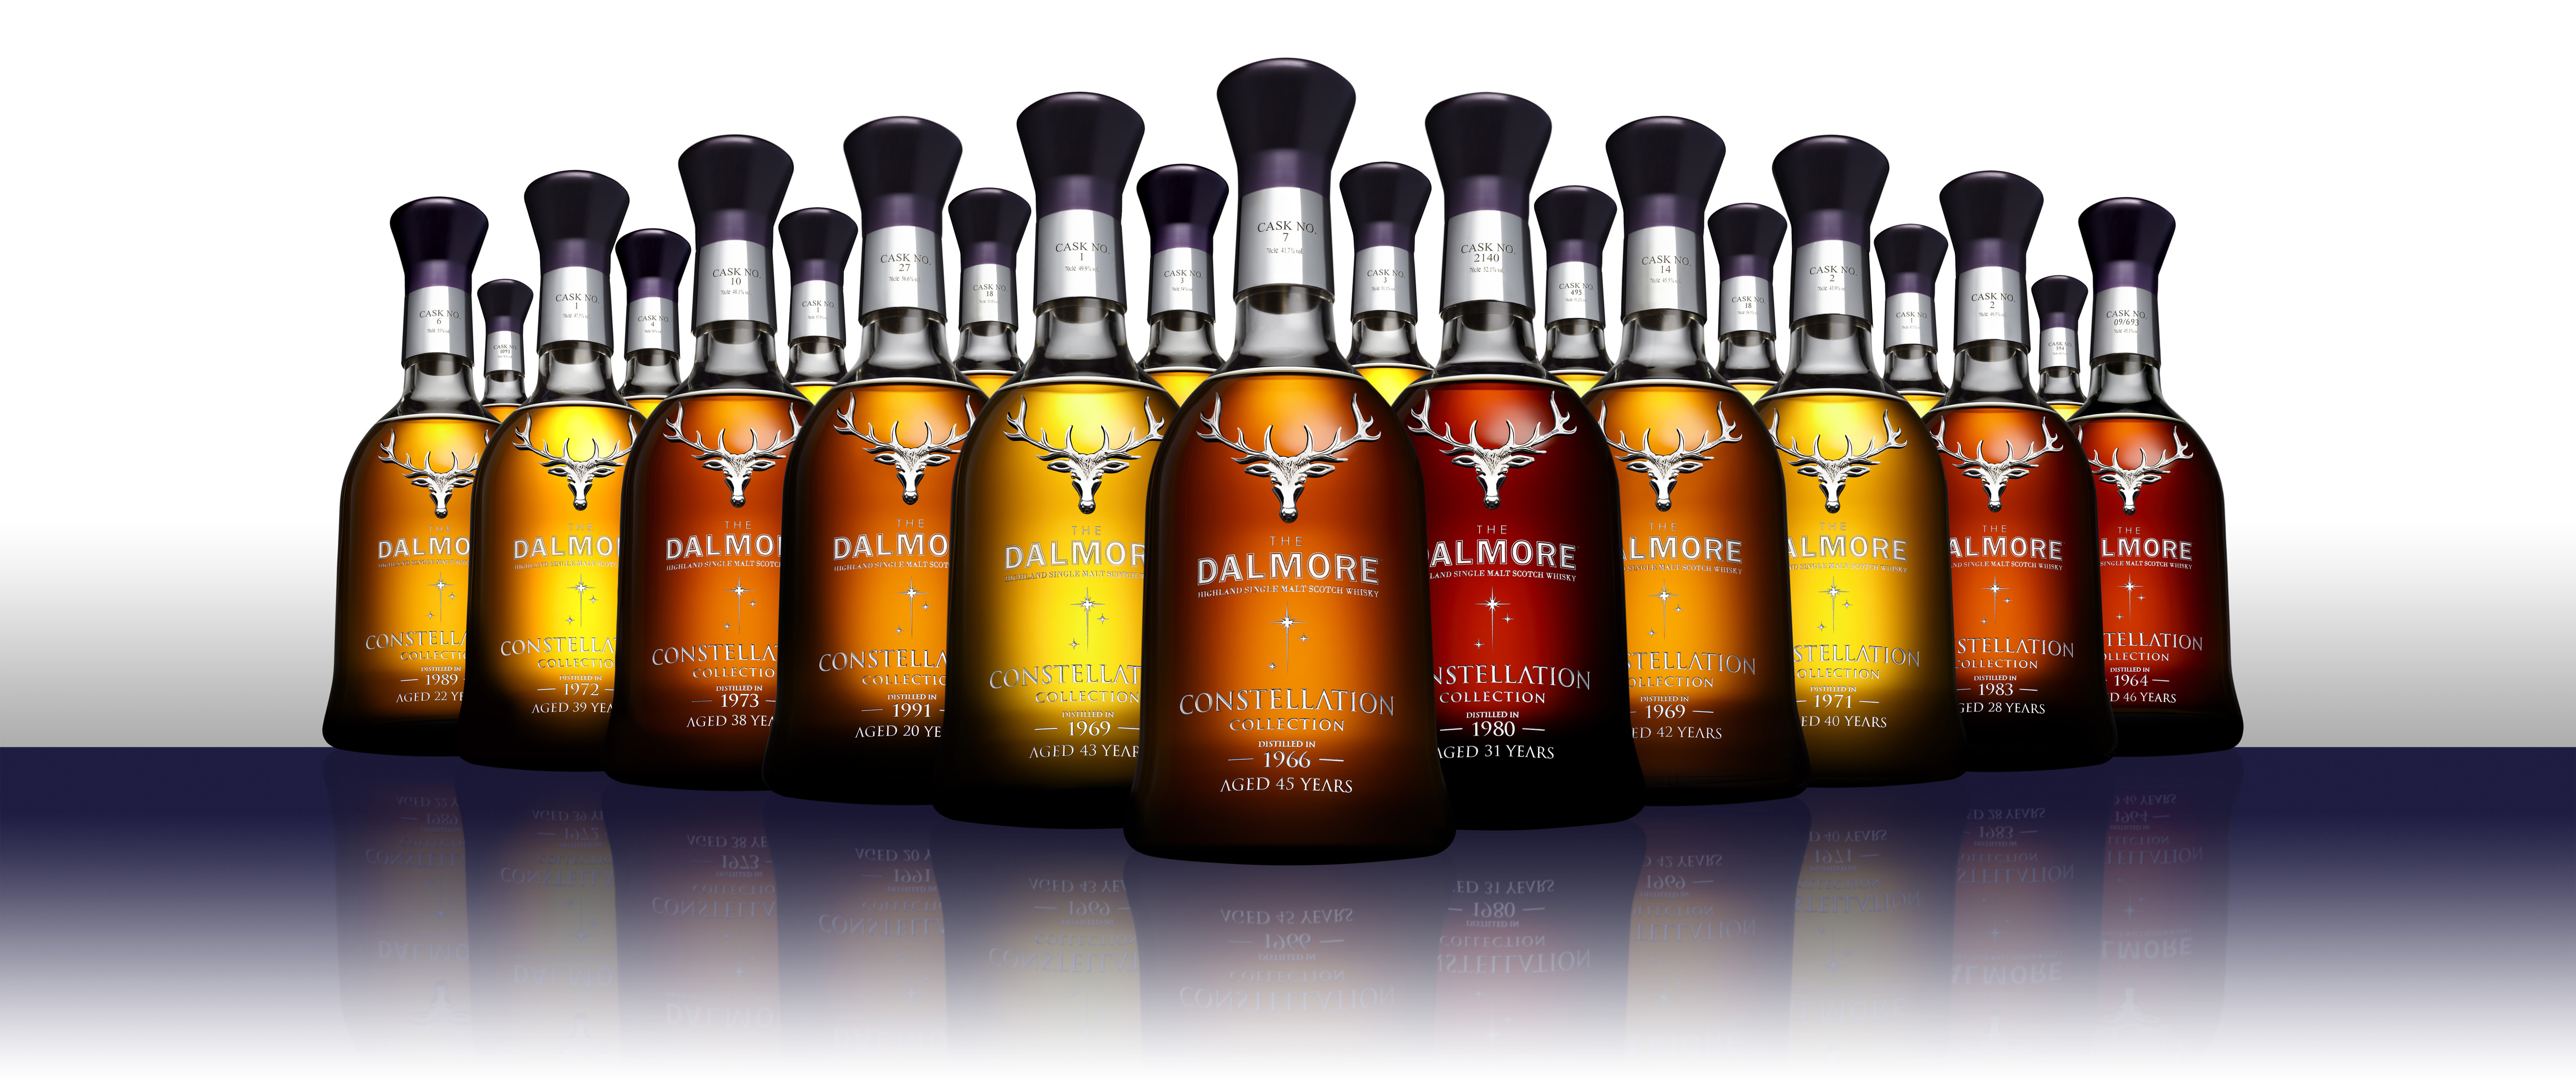 Dalmore Collection